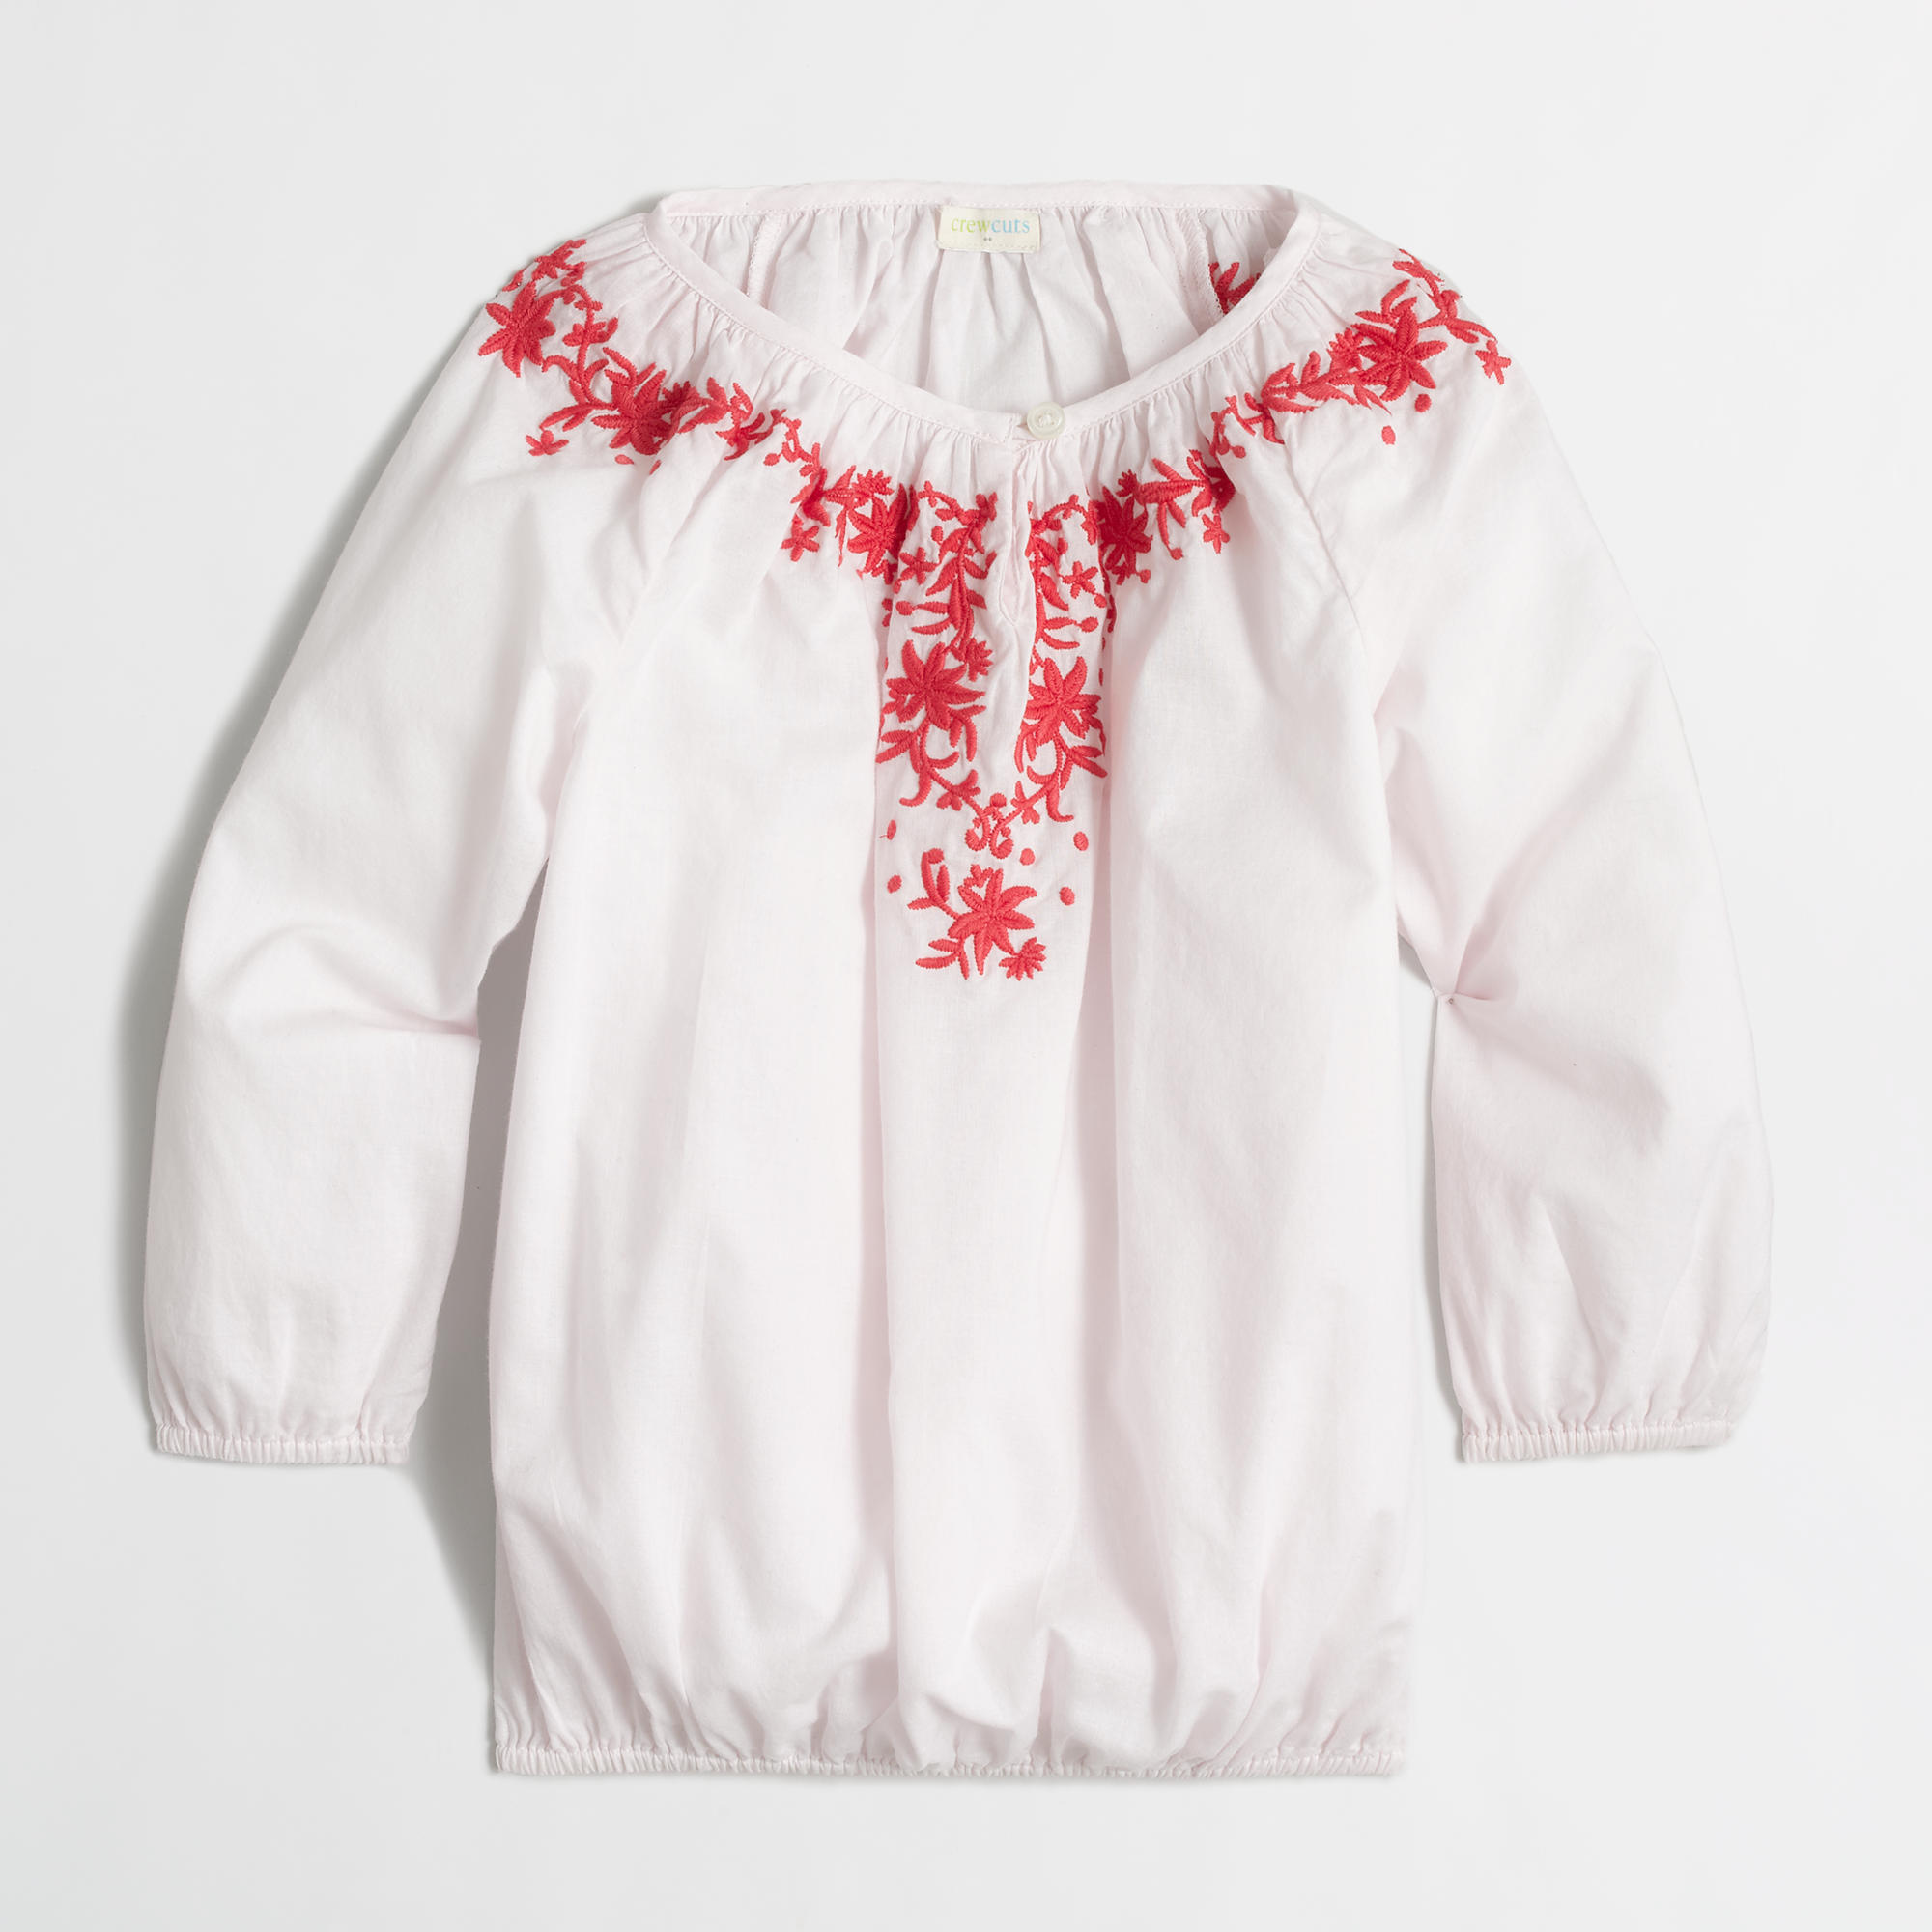 Find great deals on eBay for girls white peasant top. Shop with confidence.